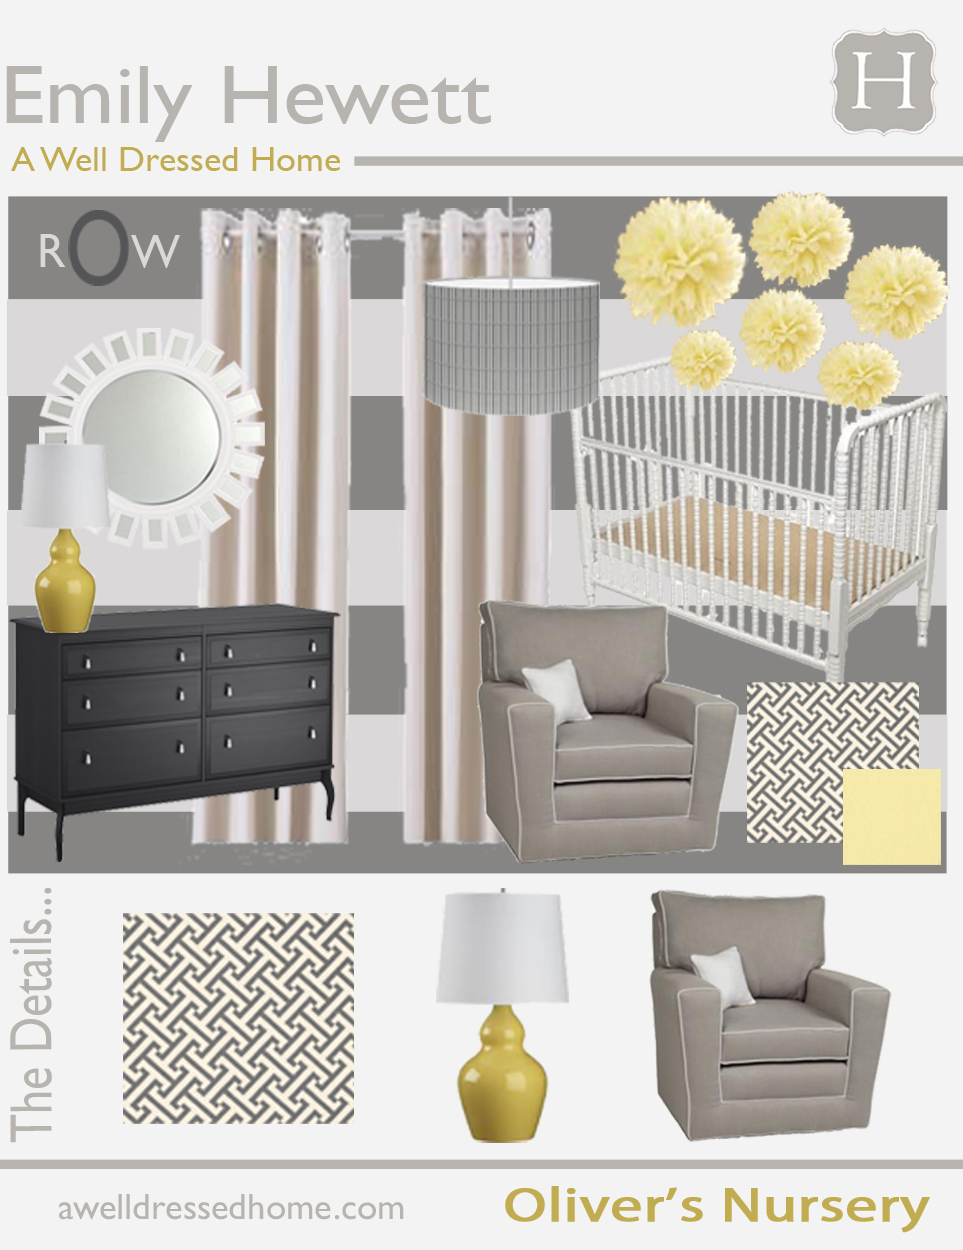 Baby Oliver's Nursery Revealed! — A Well Dressed Home on well dressed home christmas, wall decal designs, well dressed windows, furniture designs, well dressed home decor, well dressed family, wall frame designs, well dressed shoes,